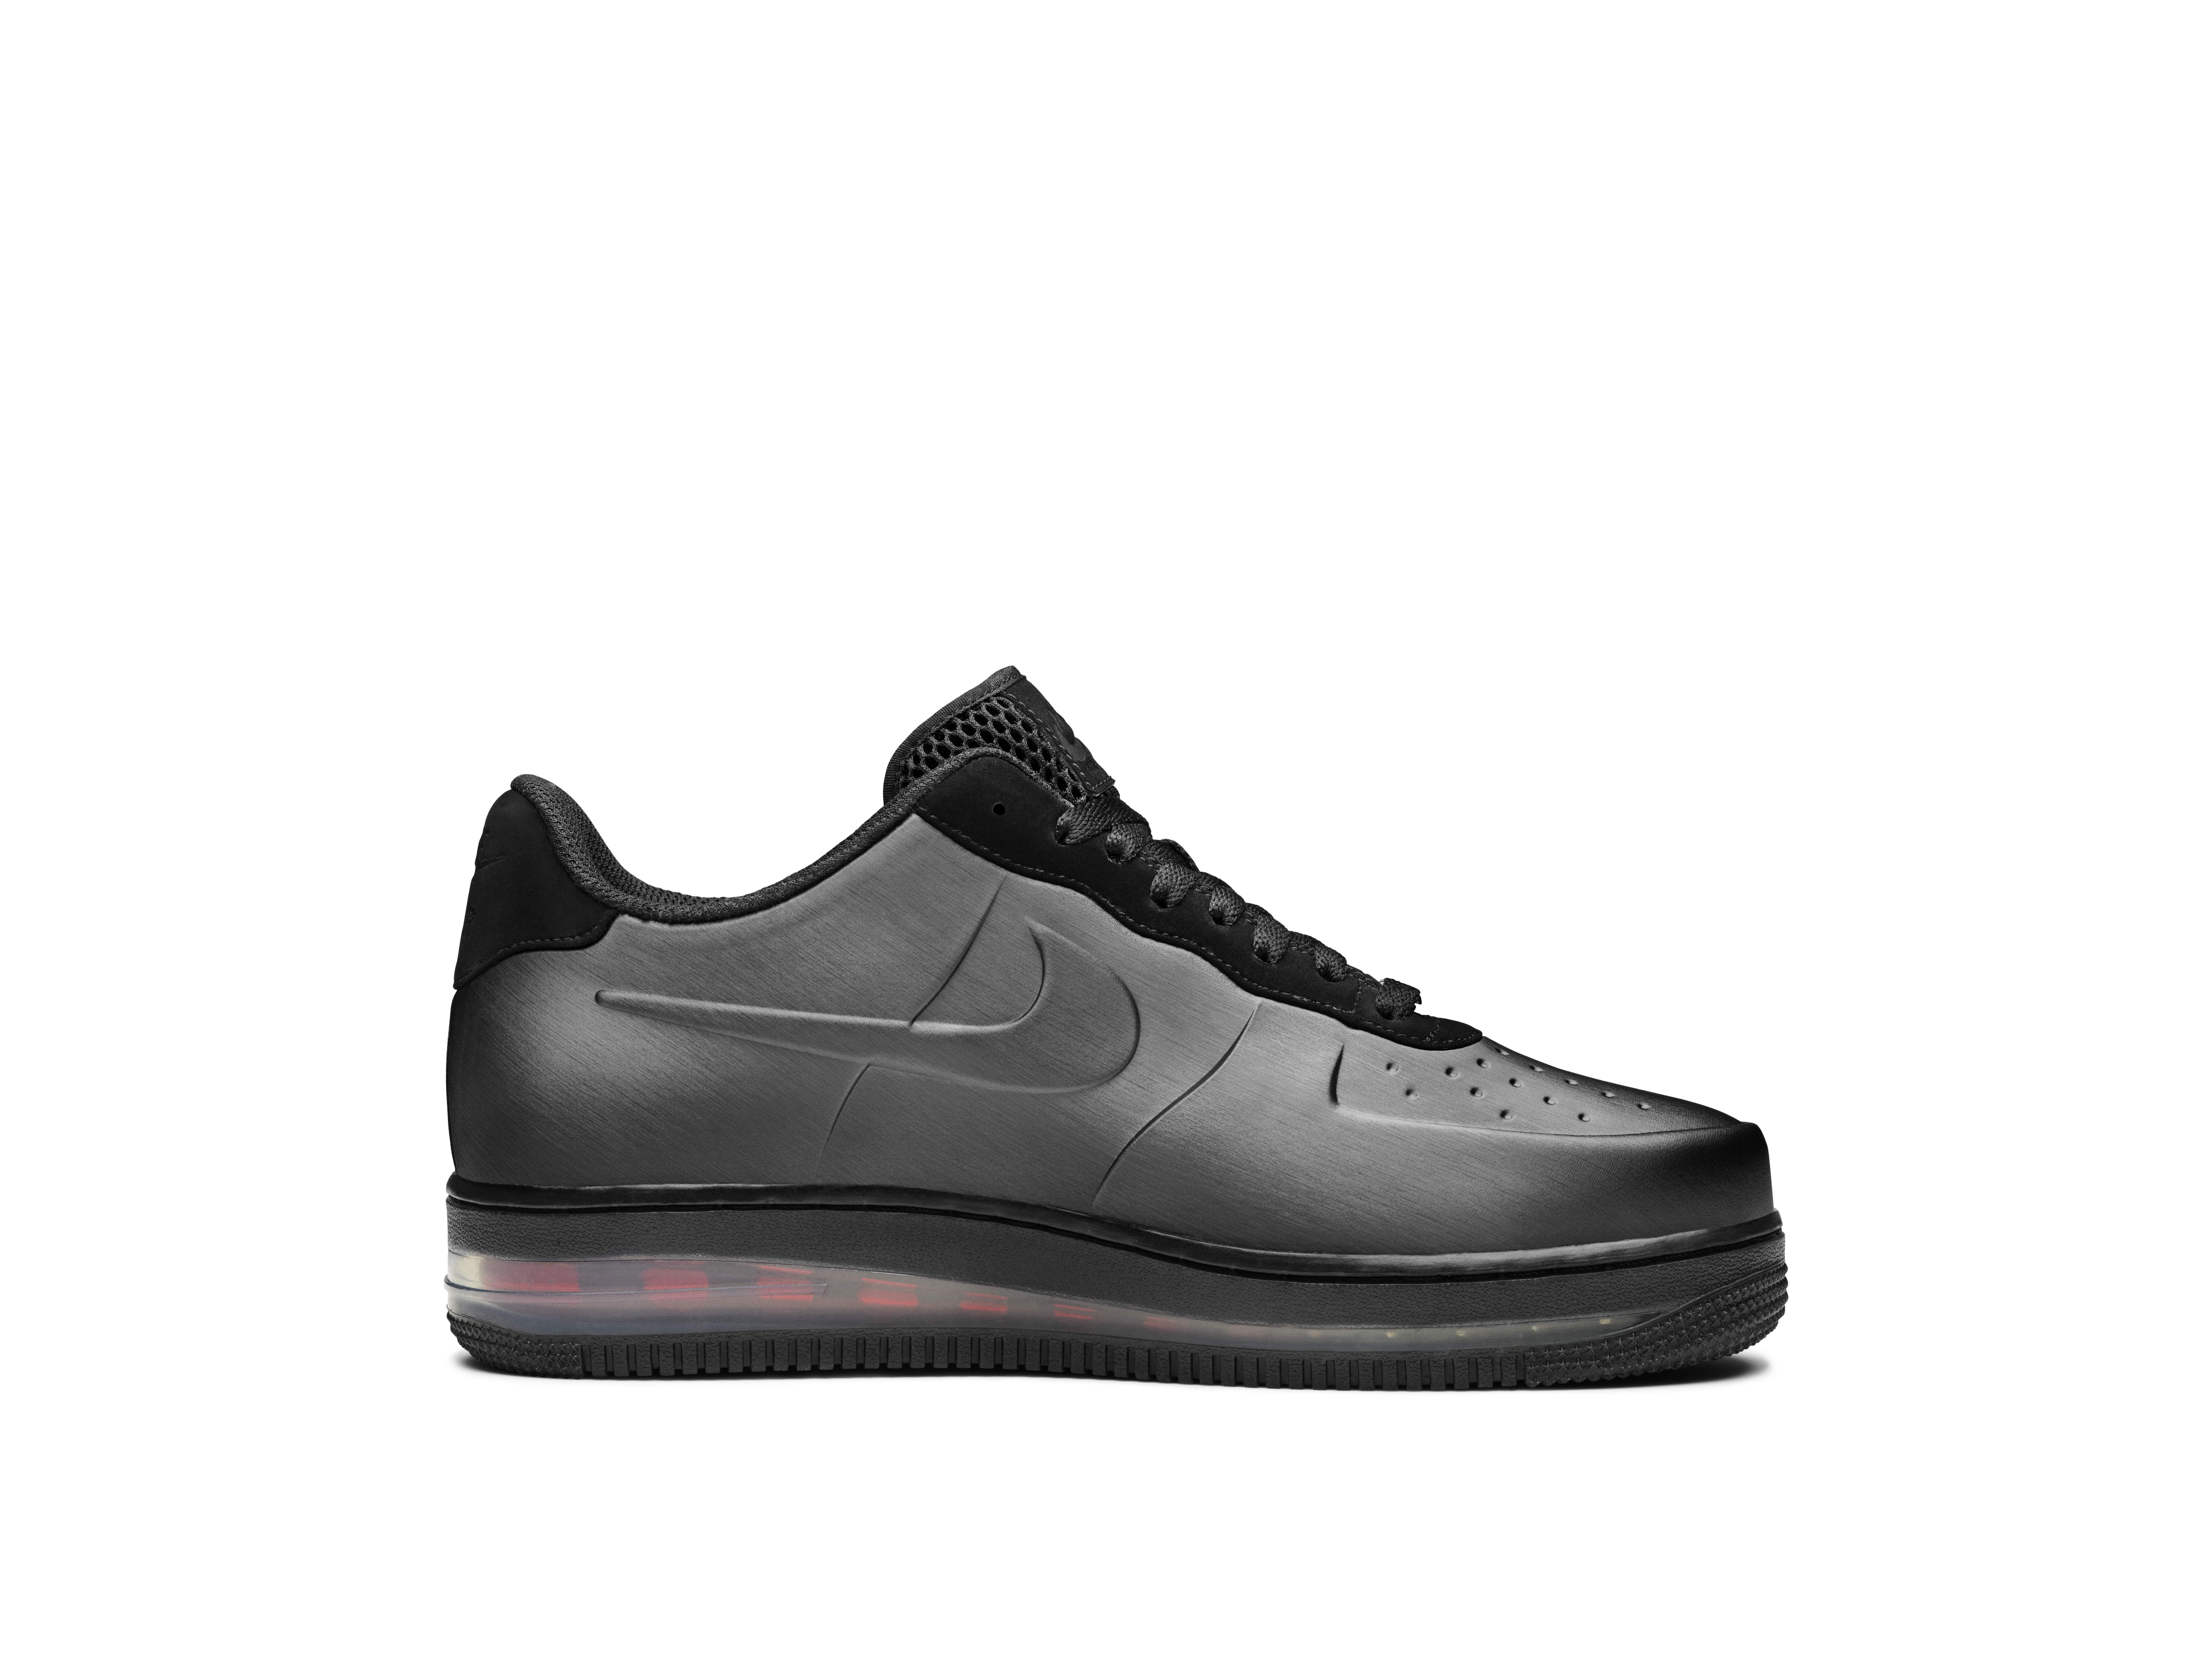 best website fb9db 6a5bf ... Black colorway 12- Nike Sportswear unveils special-edition Air Force 1.